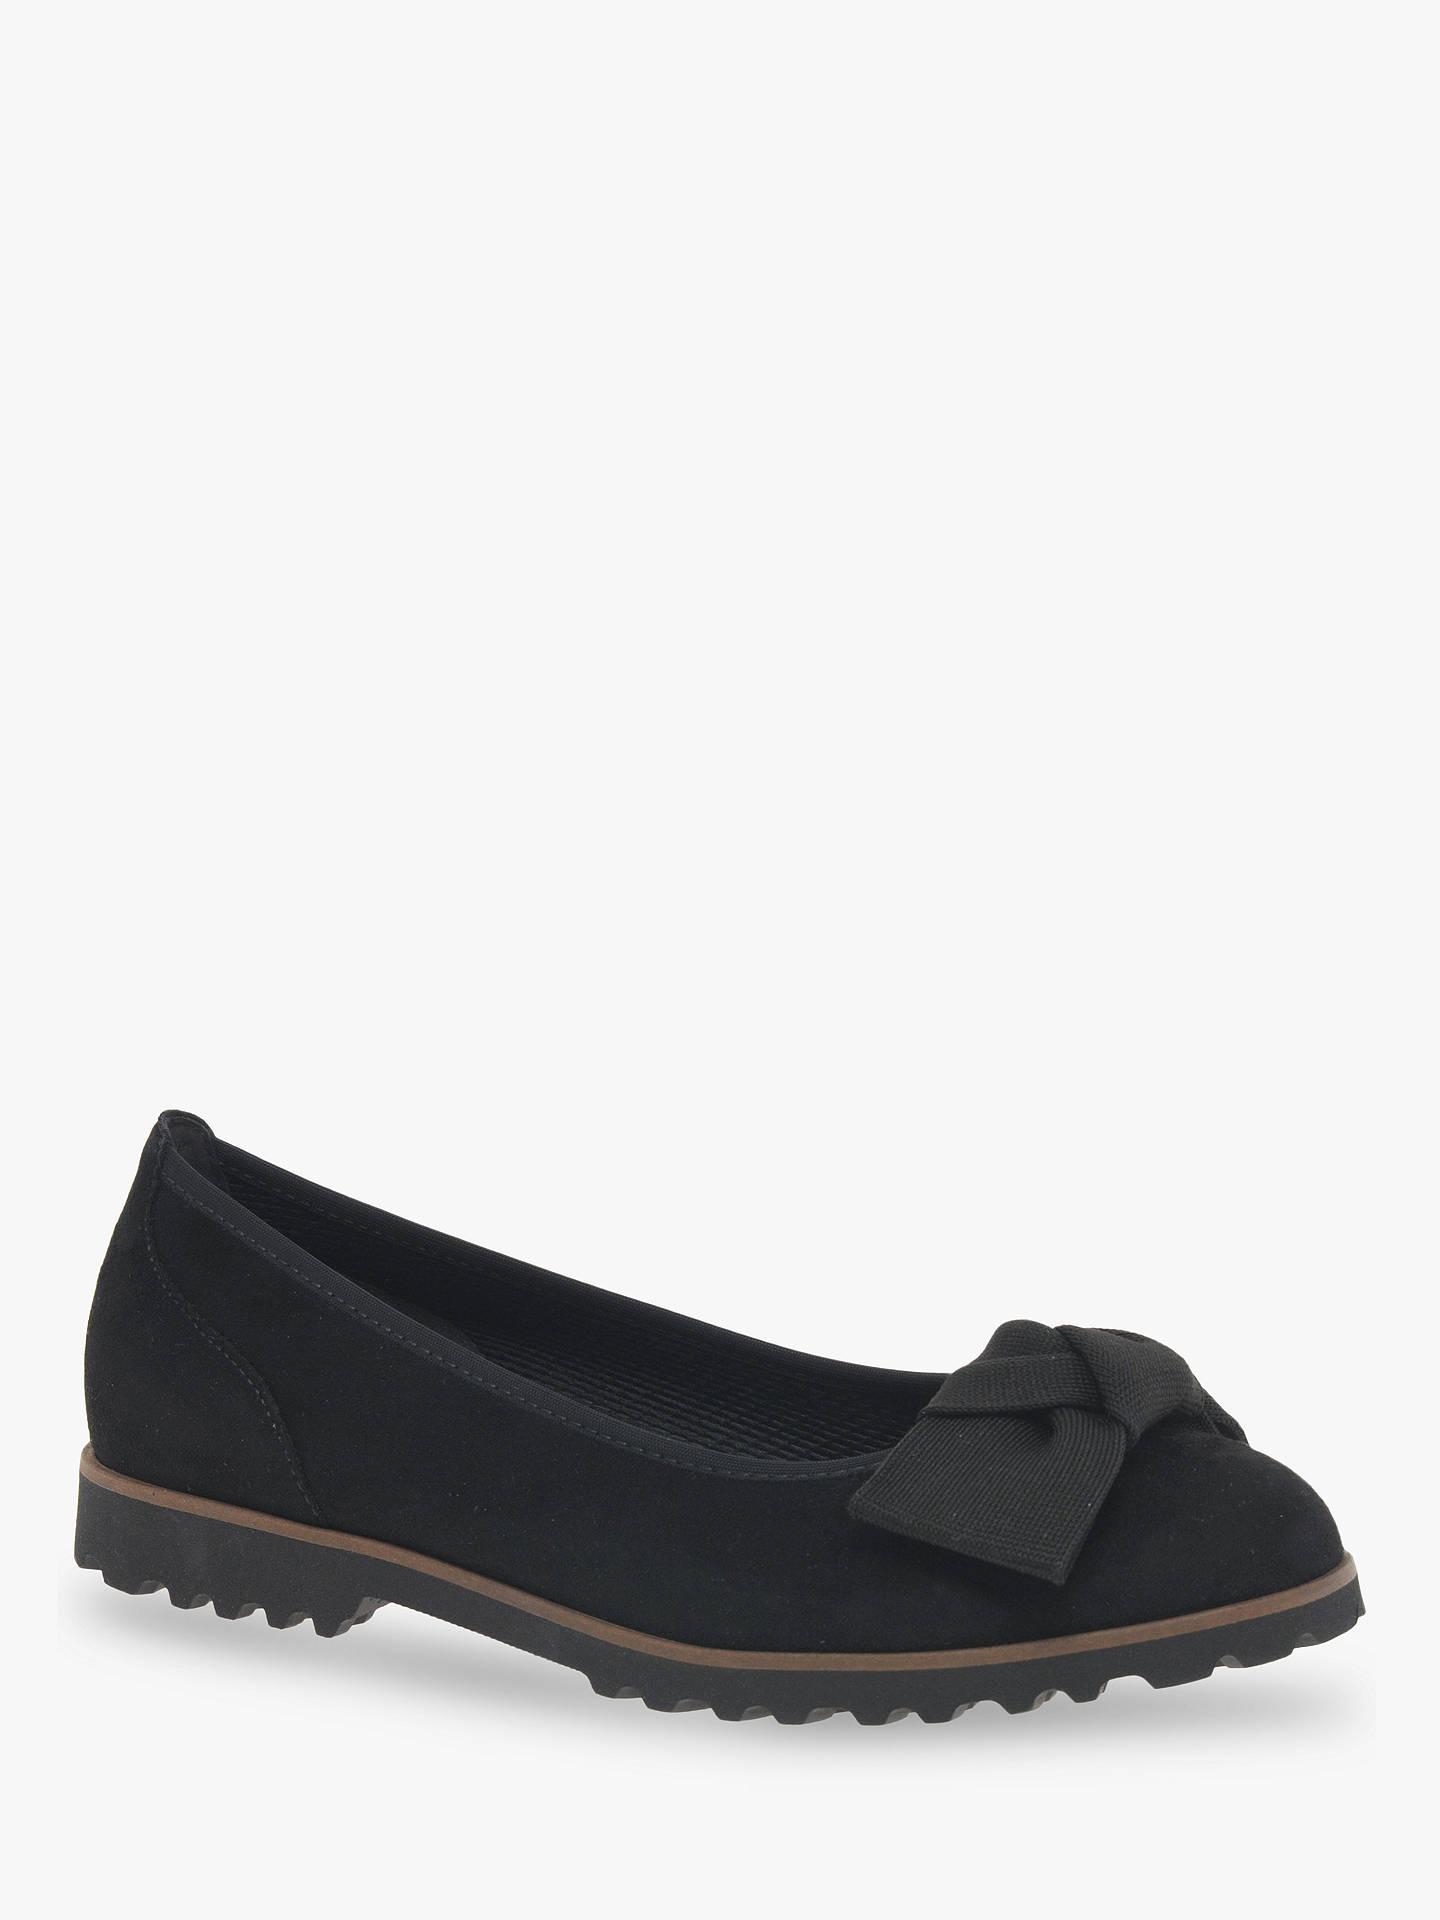 Buy Gabor Grenada Bow Detail Flat Leather Pumps, Black, 3 Online at johnlewis.com